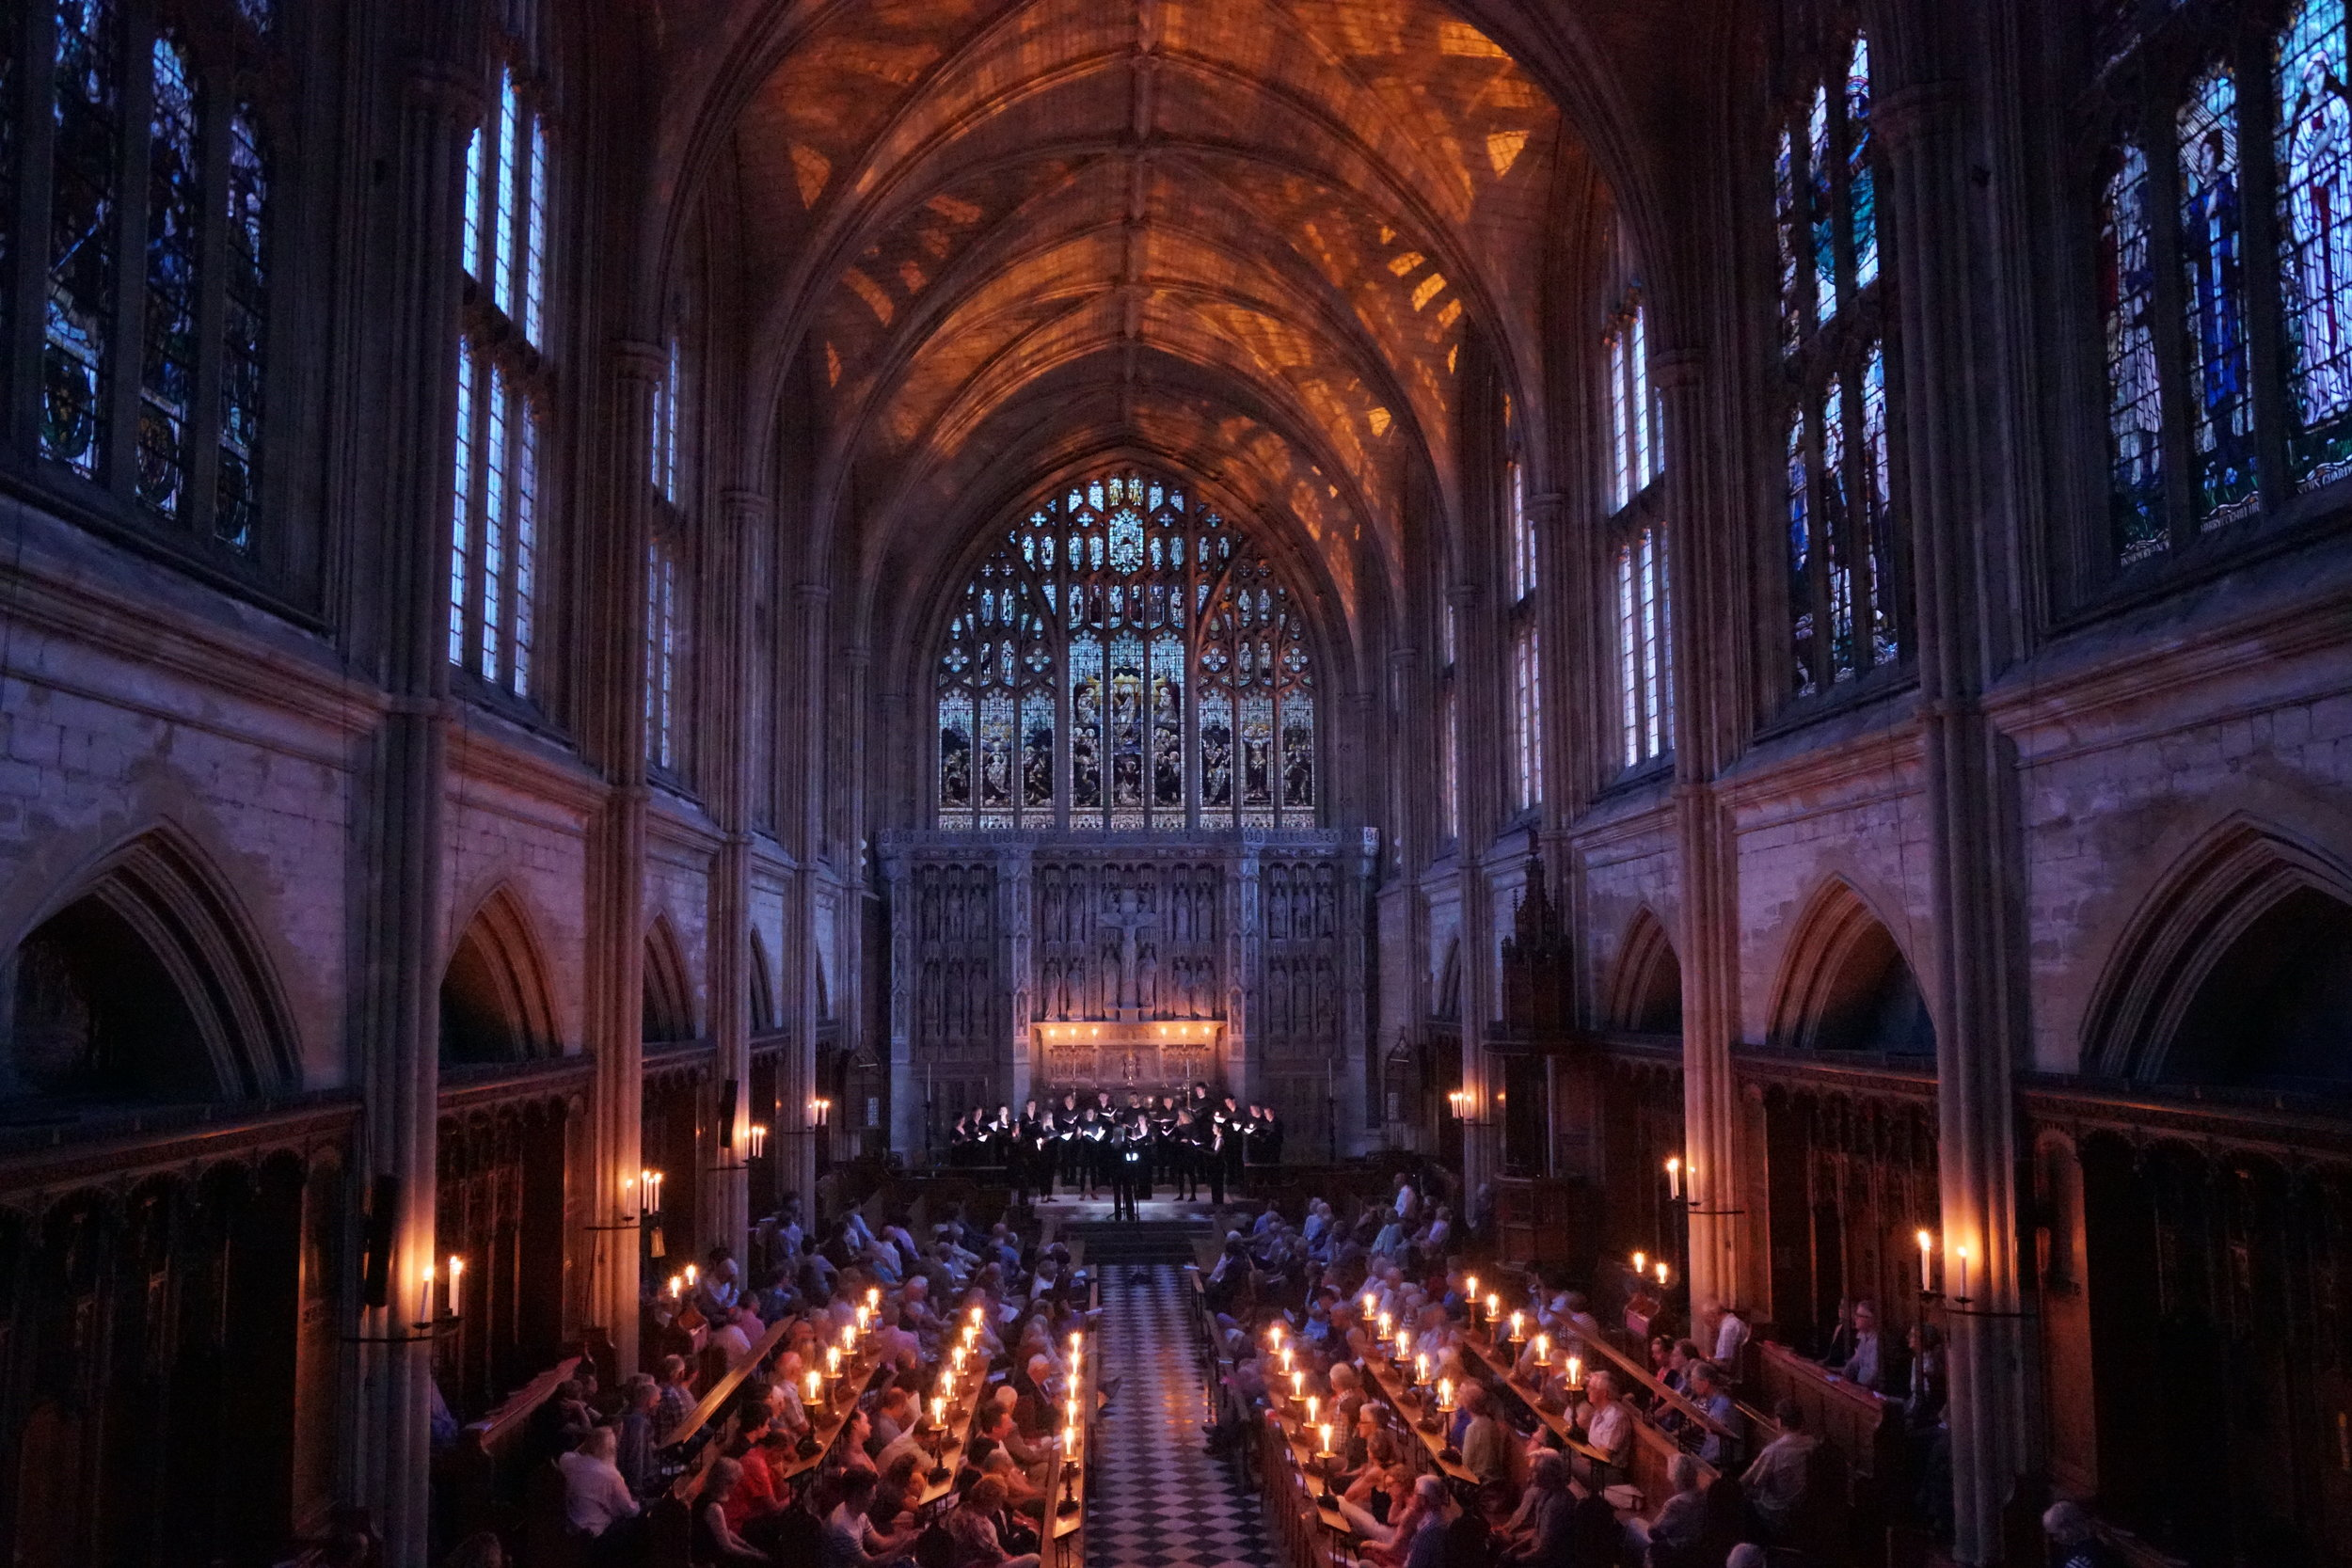 A world-class touring ensemble - ORA Singers performs spell-binding 'concert experiences' across the UK and internationally. Recent concert performances have included a sold-out performance at Tage Alter Musik Festival, Regensburg, to an audience of over 1000, and two performances at the 2019 Cheltenham Music Festival.ORA creates bespoke and unique concert performances, tailored specifically to its chosen concert spaces. Musical programmes are choreographed with singer movement, lighting and specifically commissioned 'design elements'. These have included works by Linbury Prize Winner Eleanor Bull, world-class theatre designer Nicky Shaw, and creator of the iconic ORA 'light-boxes', Anna Bonomelli.